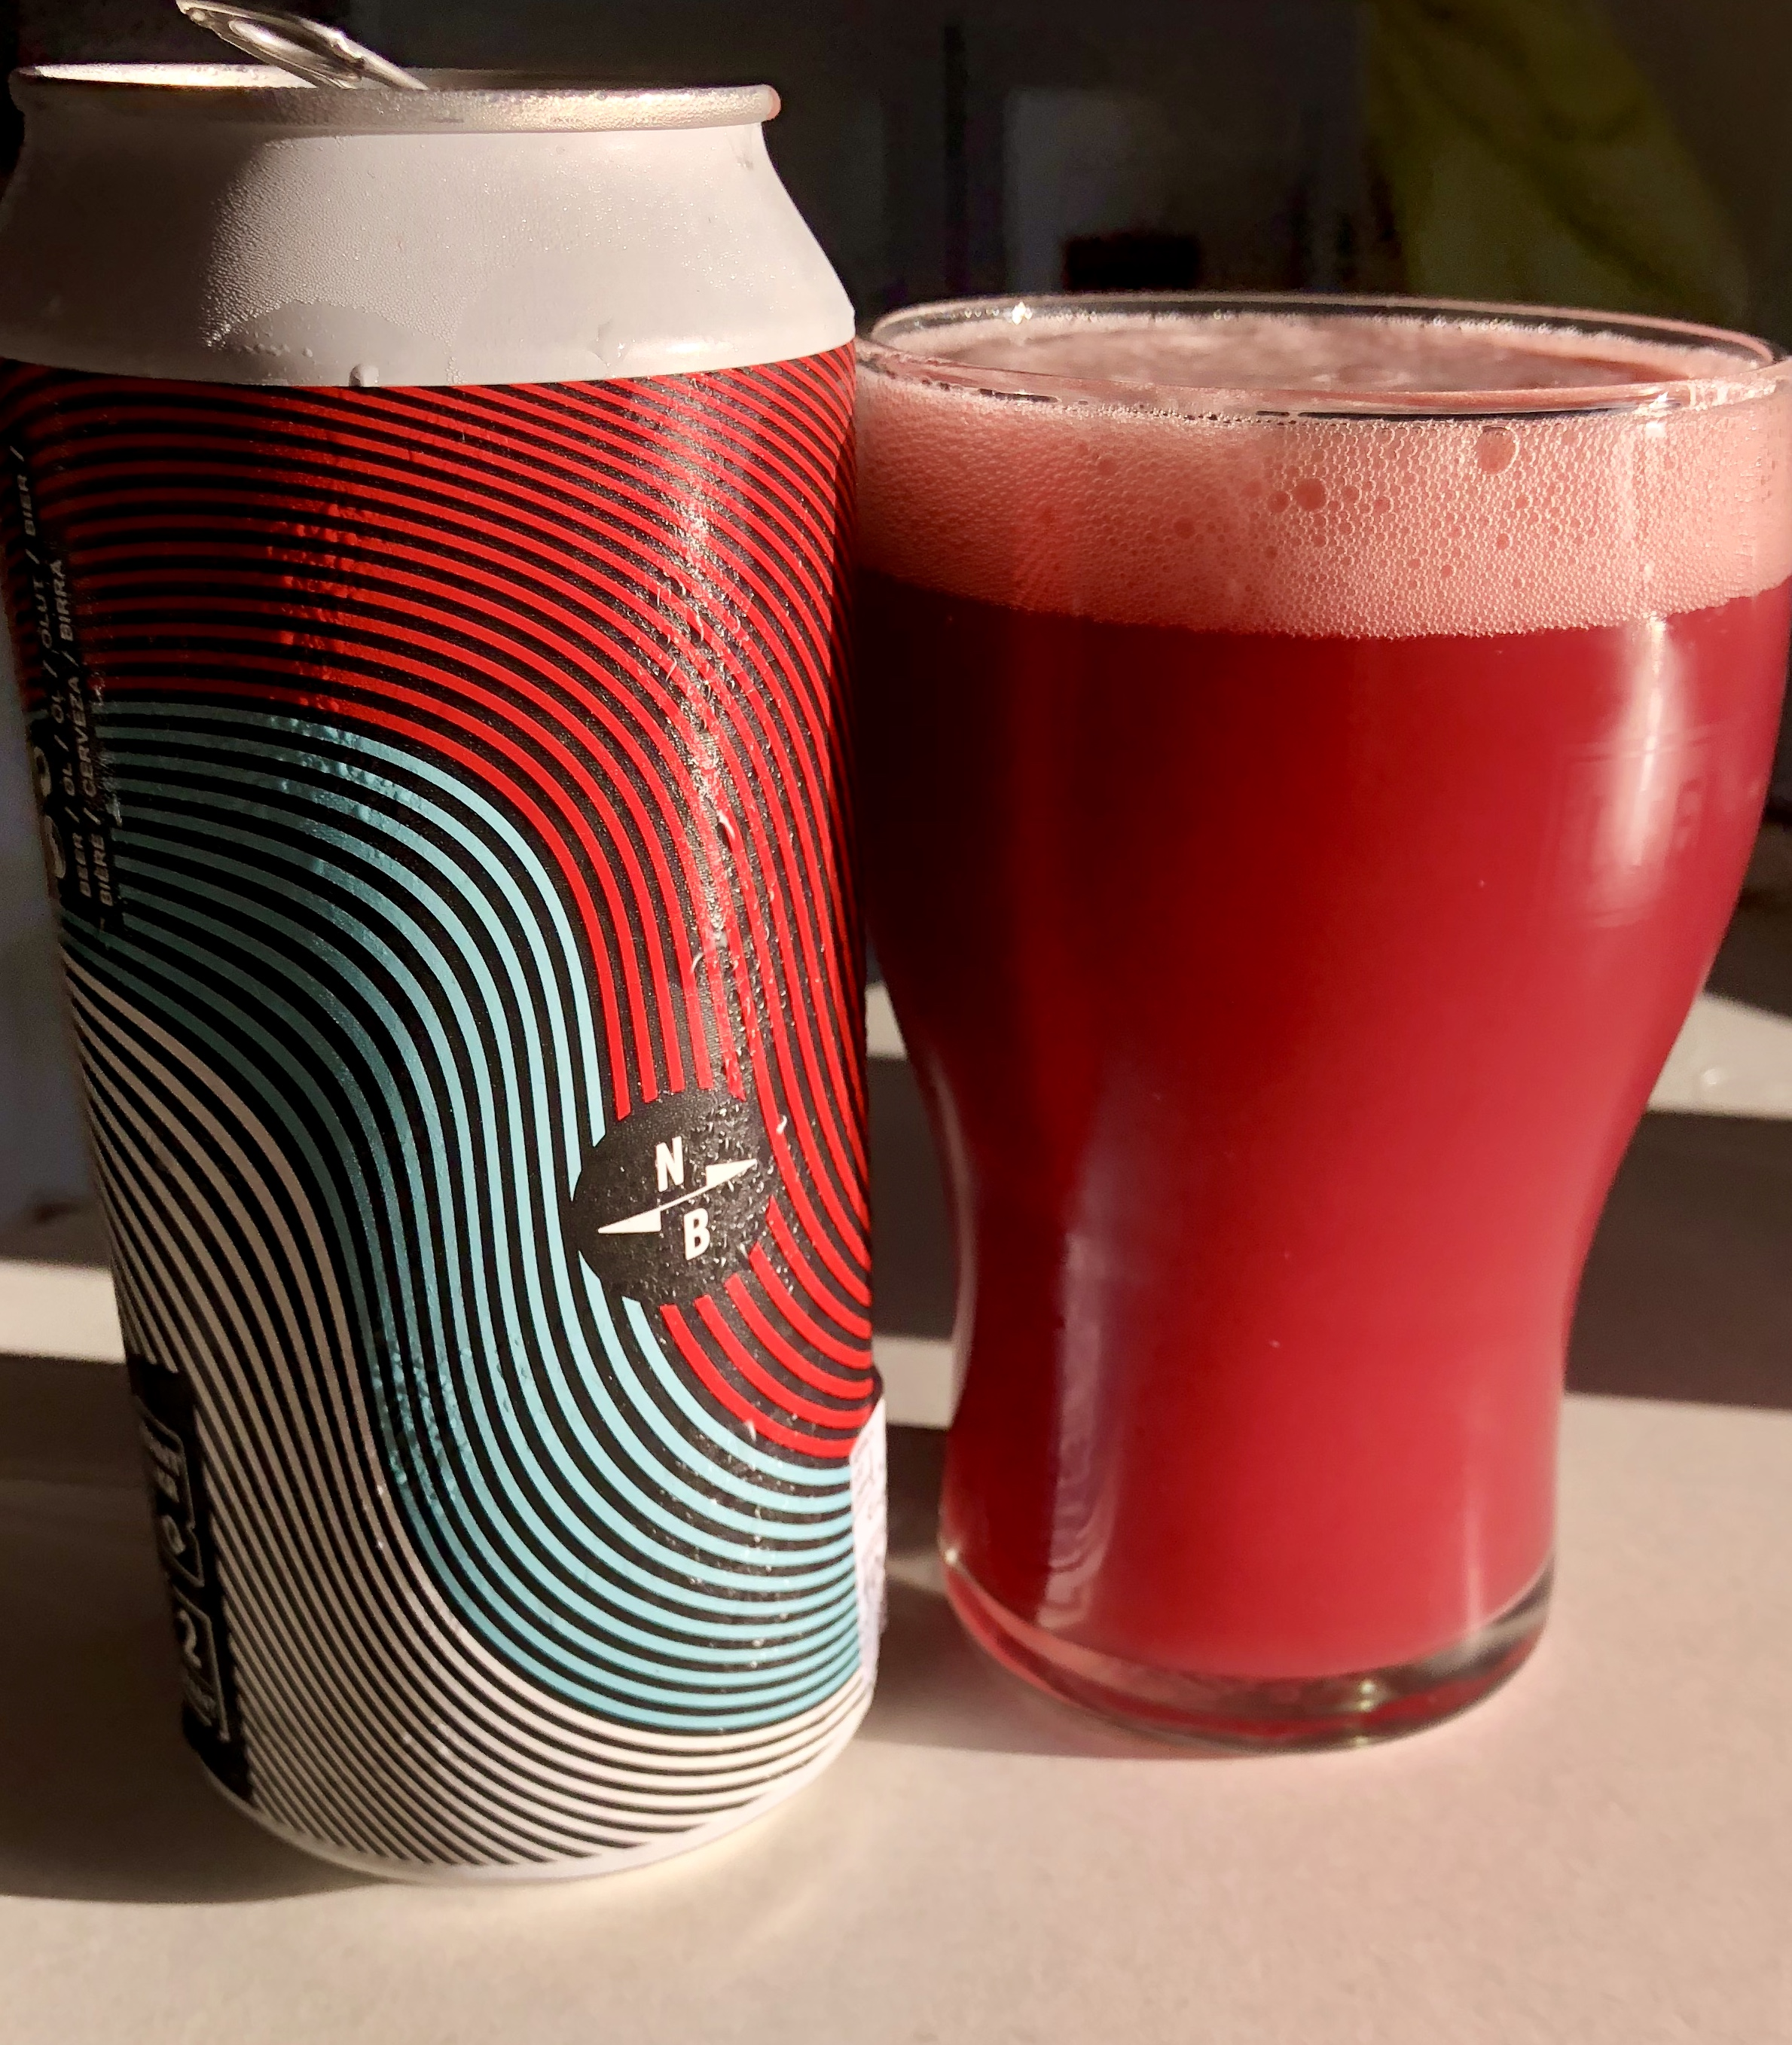 North / Verdant Brewing Triple Fruited Gose (4% abv): English collab brew that packs a shedload of blackberries and raspberries into a refreshing salted sour. That colour!